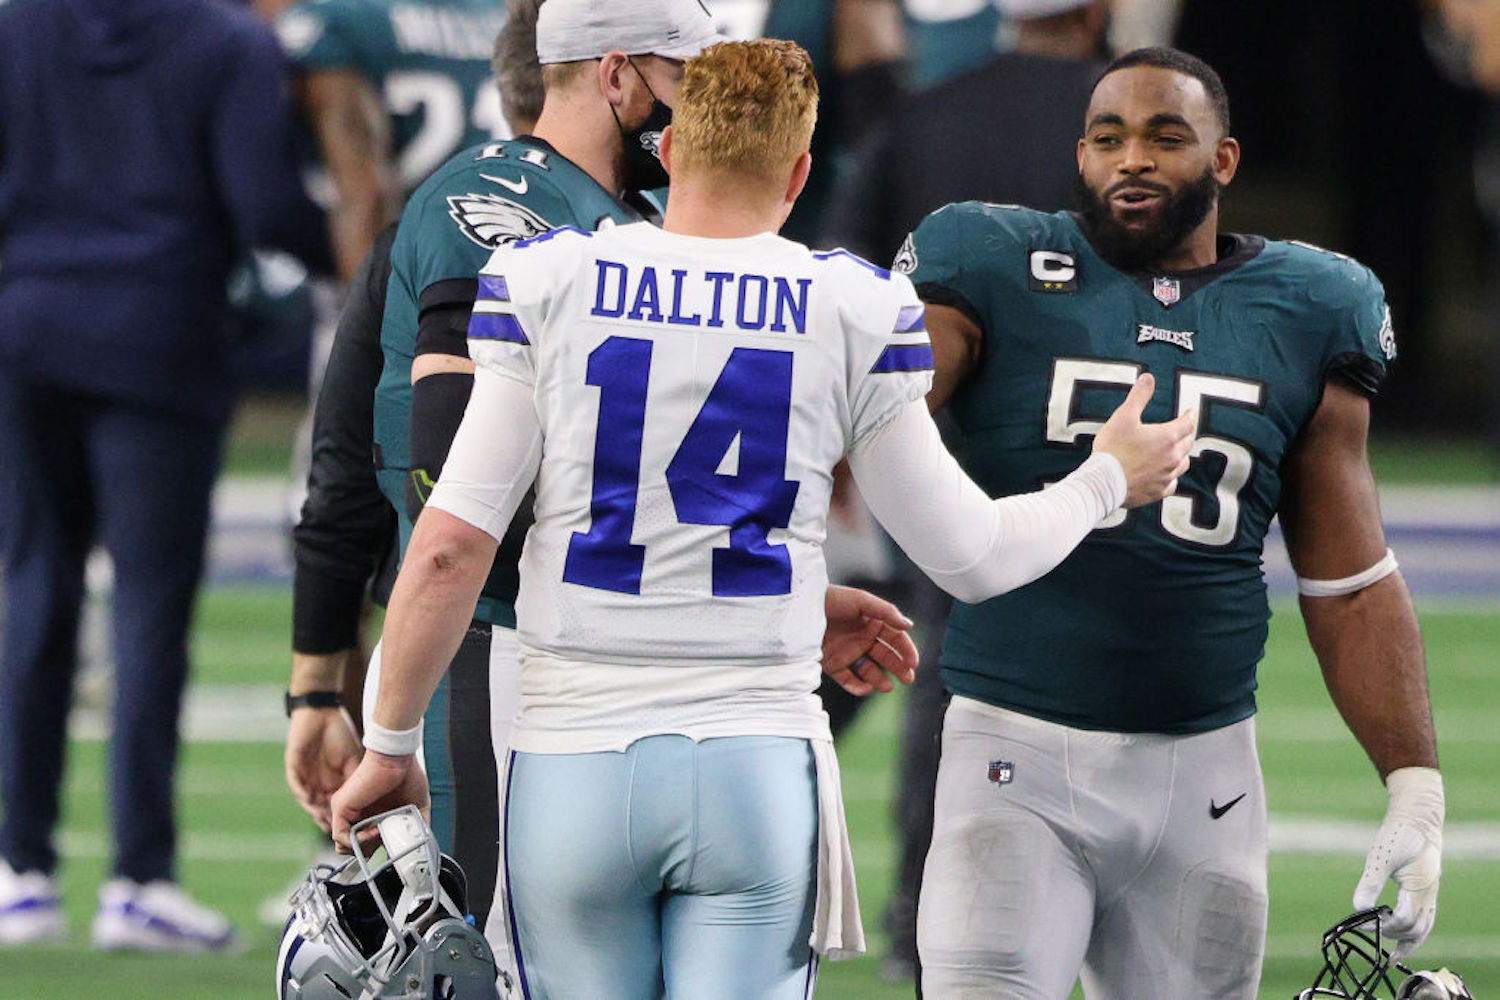 The Cowboys have a burning hatred for the Eagles, but they'll be rooting for their biggest rival harder than anyone next Sunday.